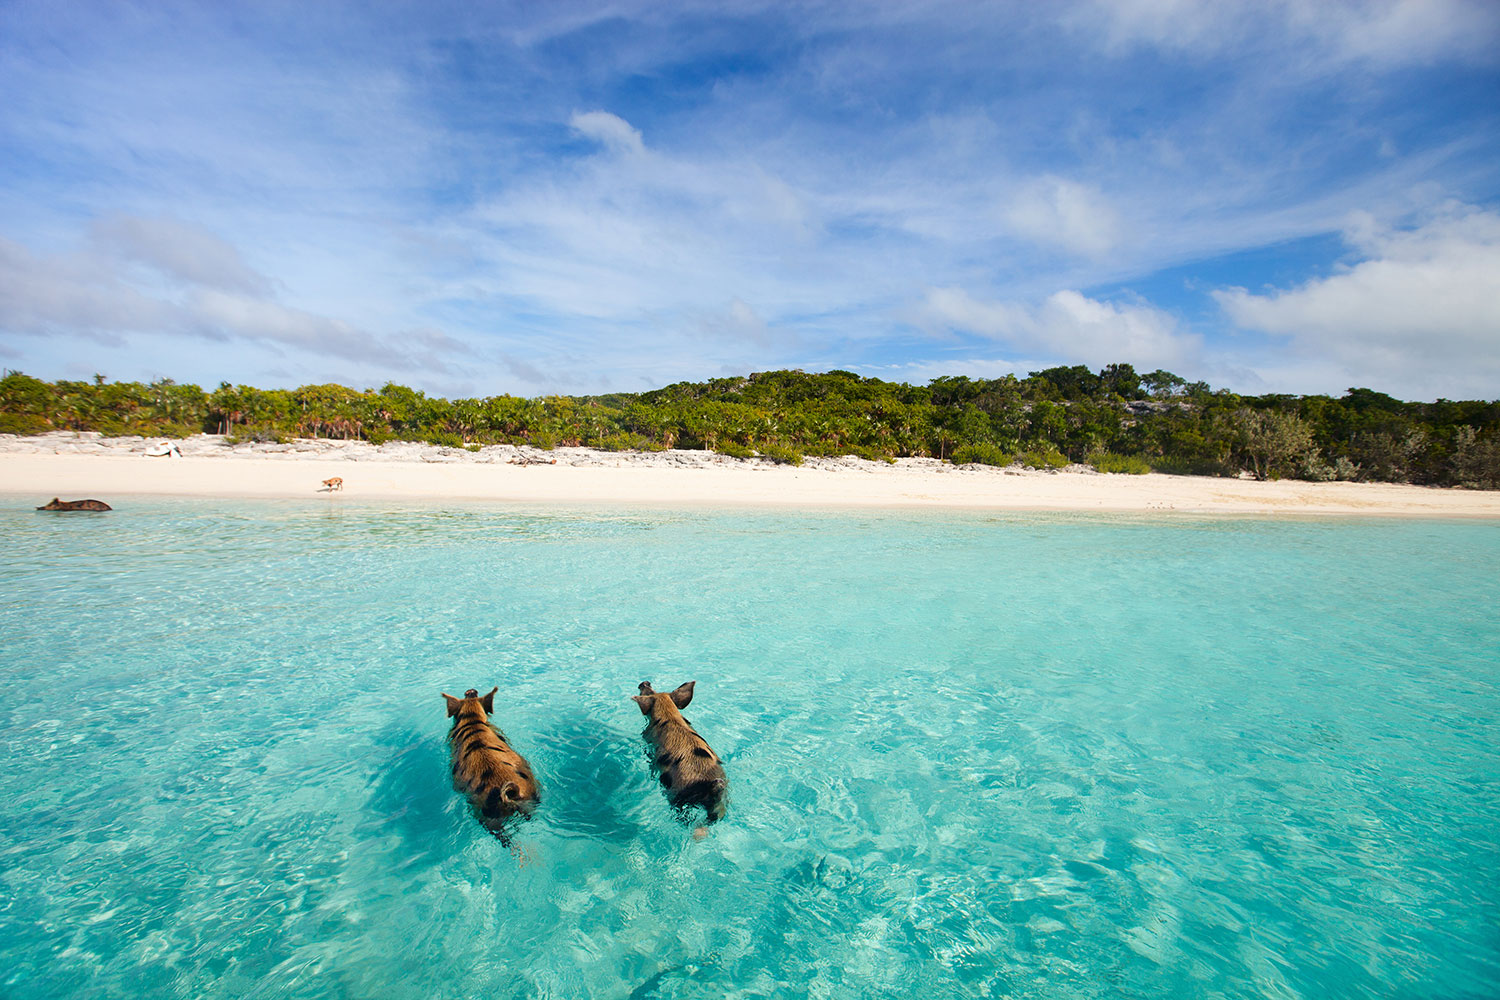 Two pigs swimming near the shore in the Bahamas